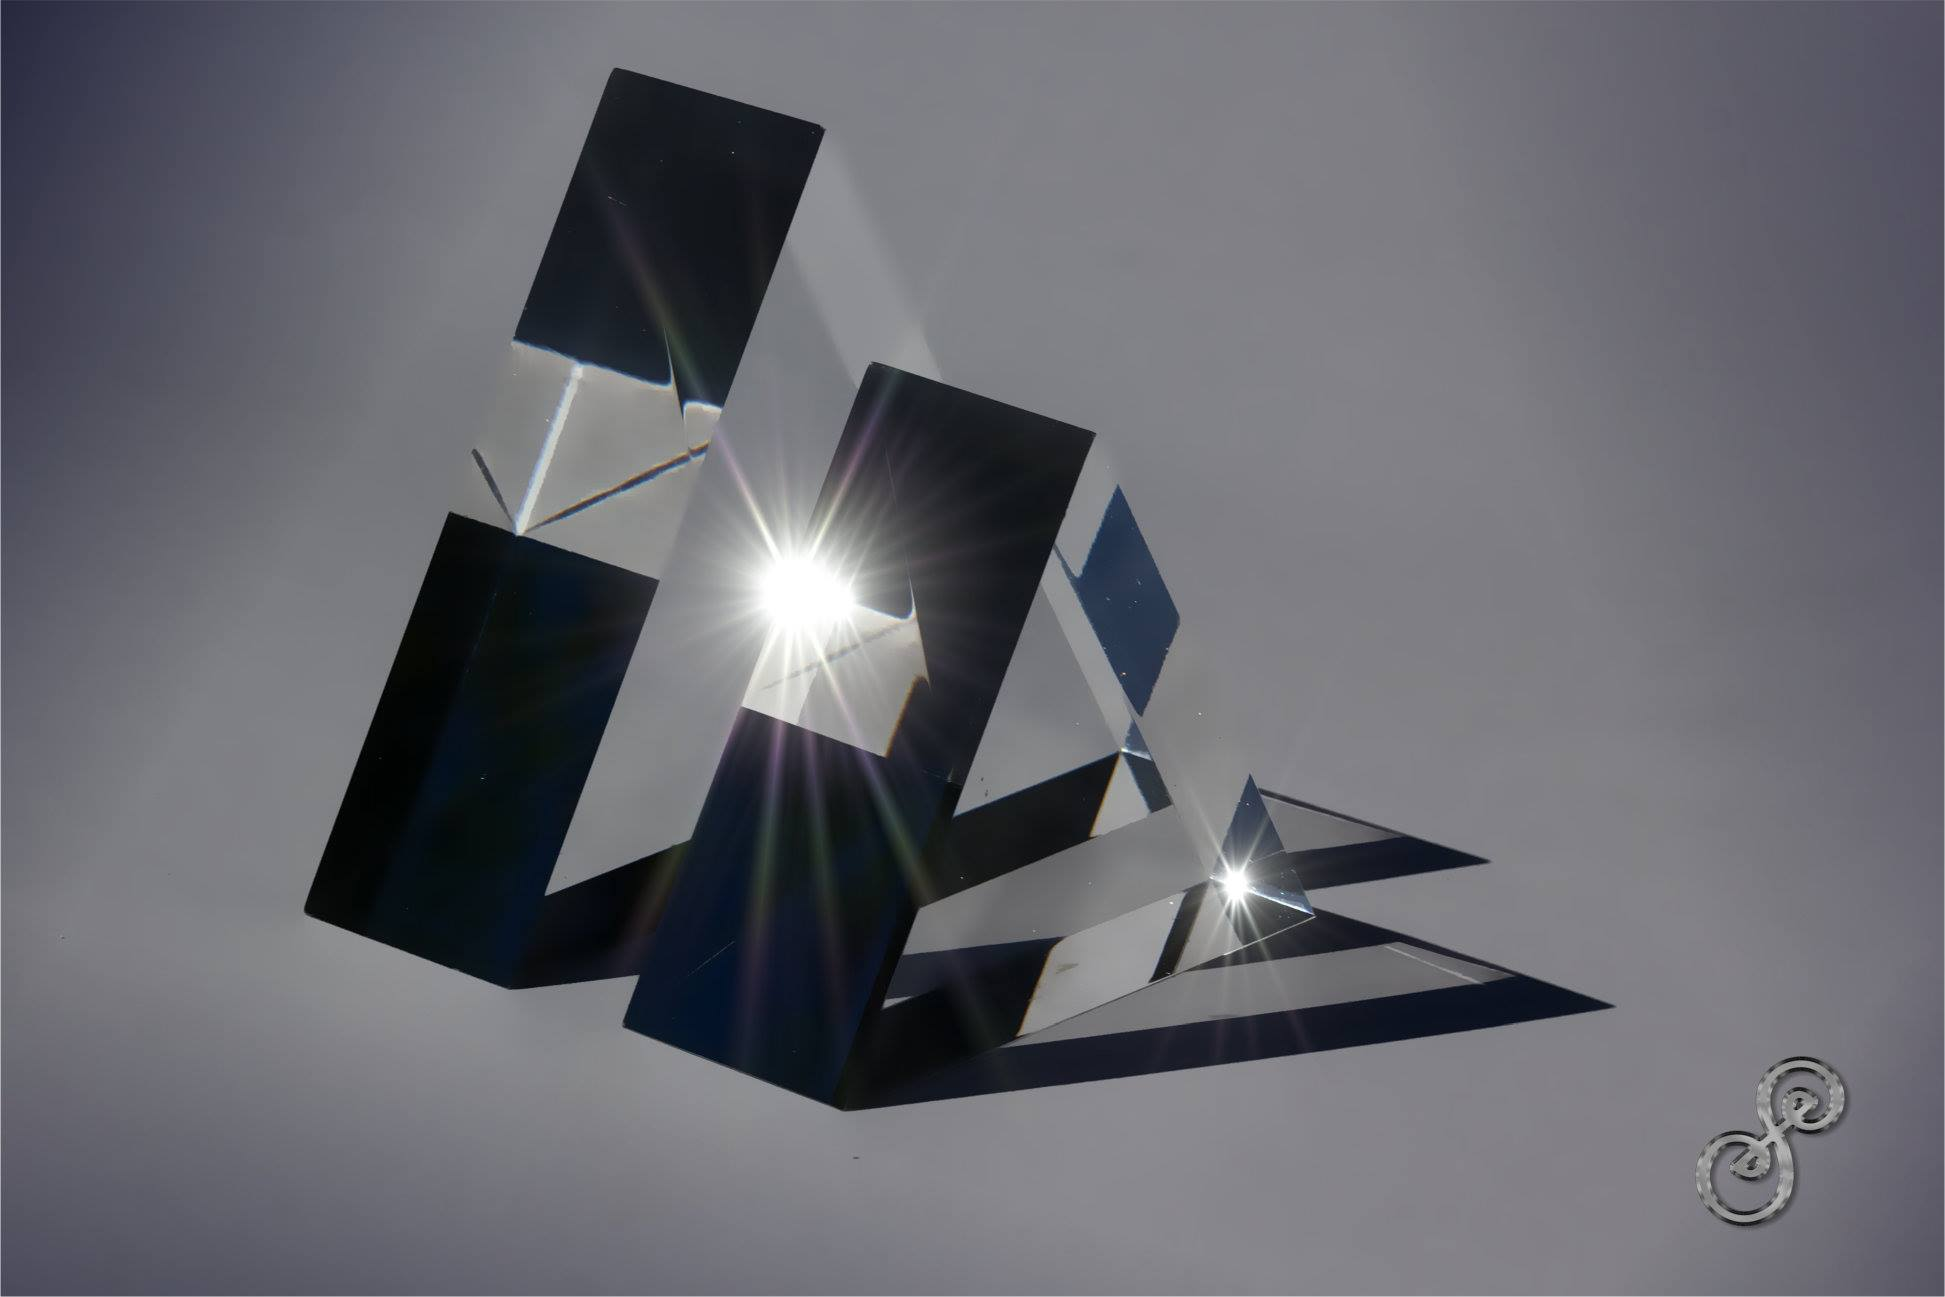 I Have Your Back - Two Prisms, a bigger one and a smaller one, standing behind one another in near monochrome with light